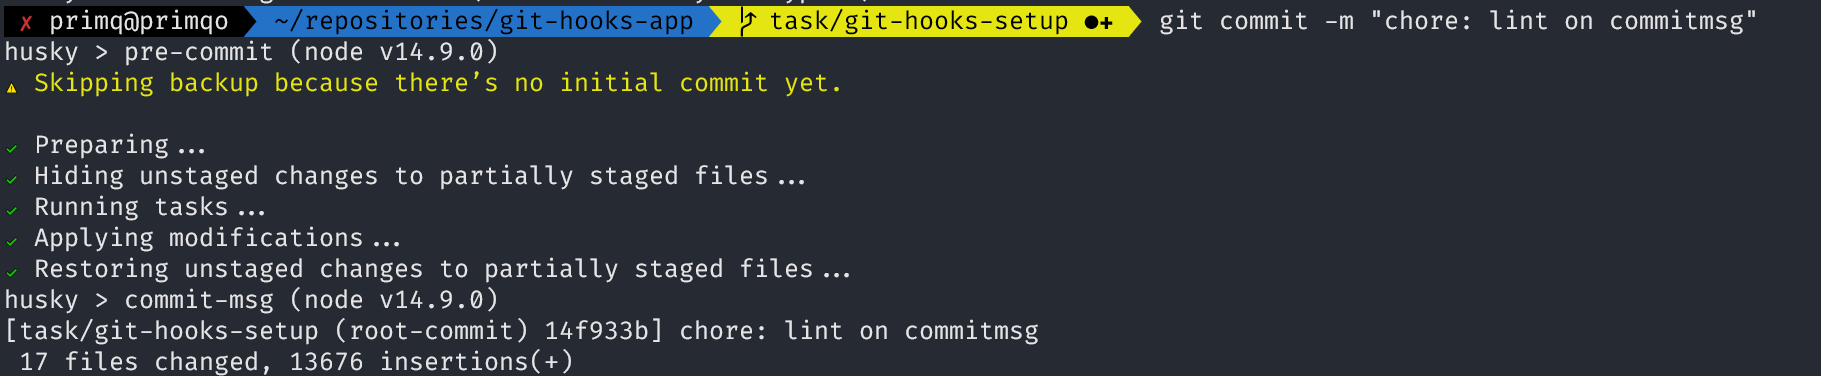 The result of running the commit command